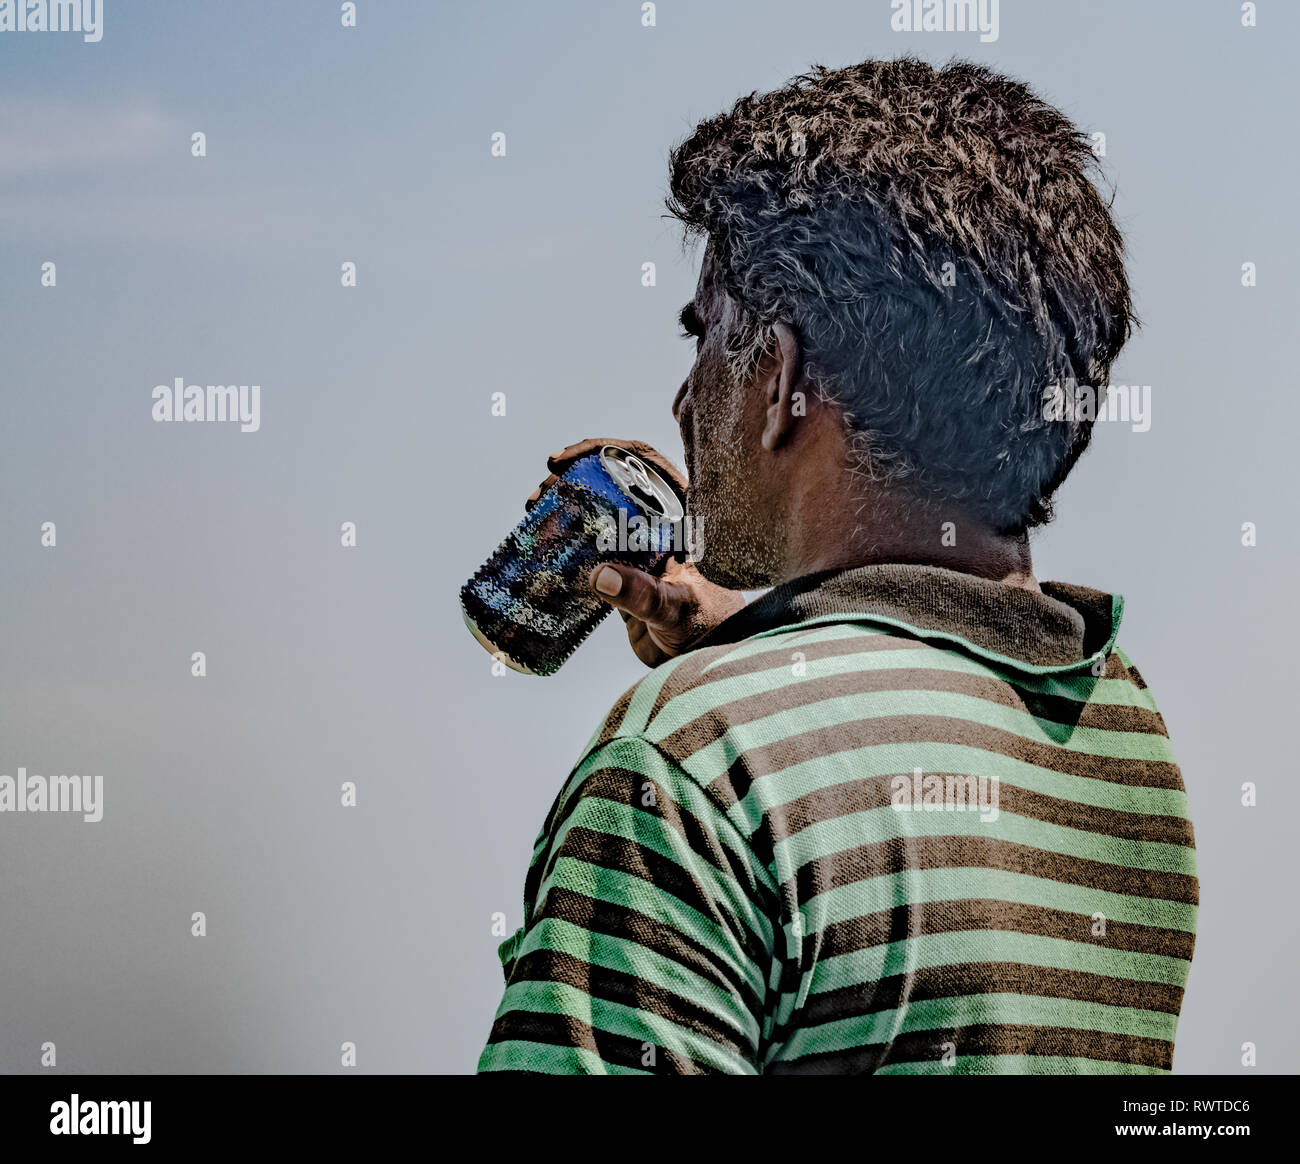 Middle Aged Fisherman of South Asian Origin, wearing striped tshirt is exhausted and quenching his thirst by drinking beer/cold drink on hot sunny day - Stock Image